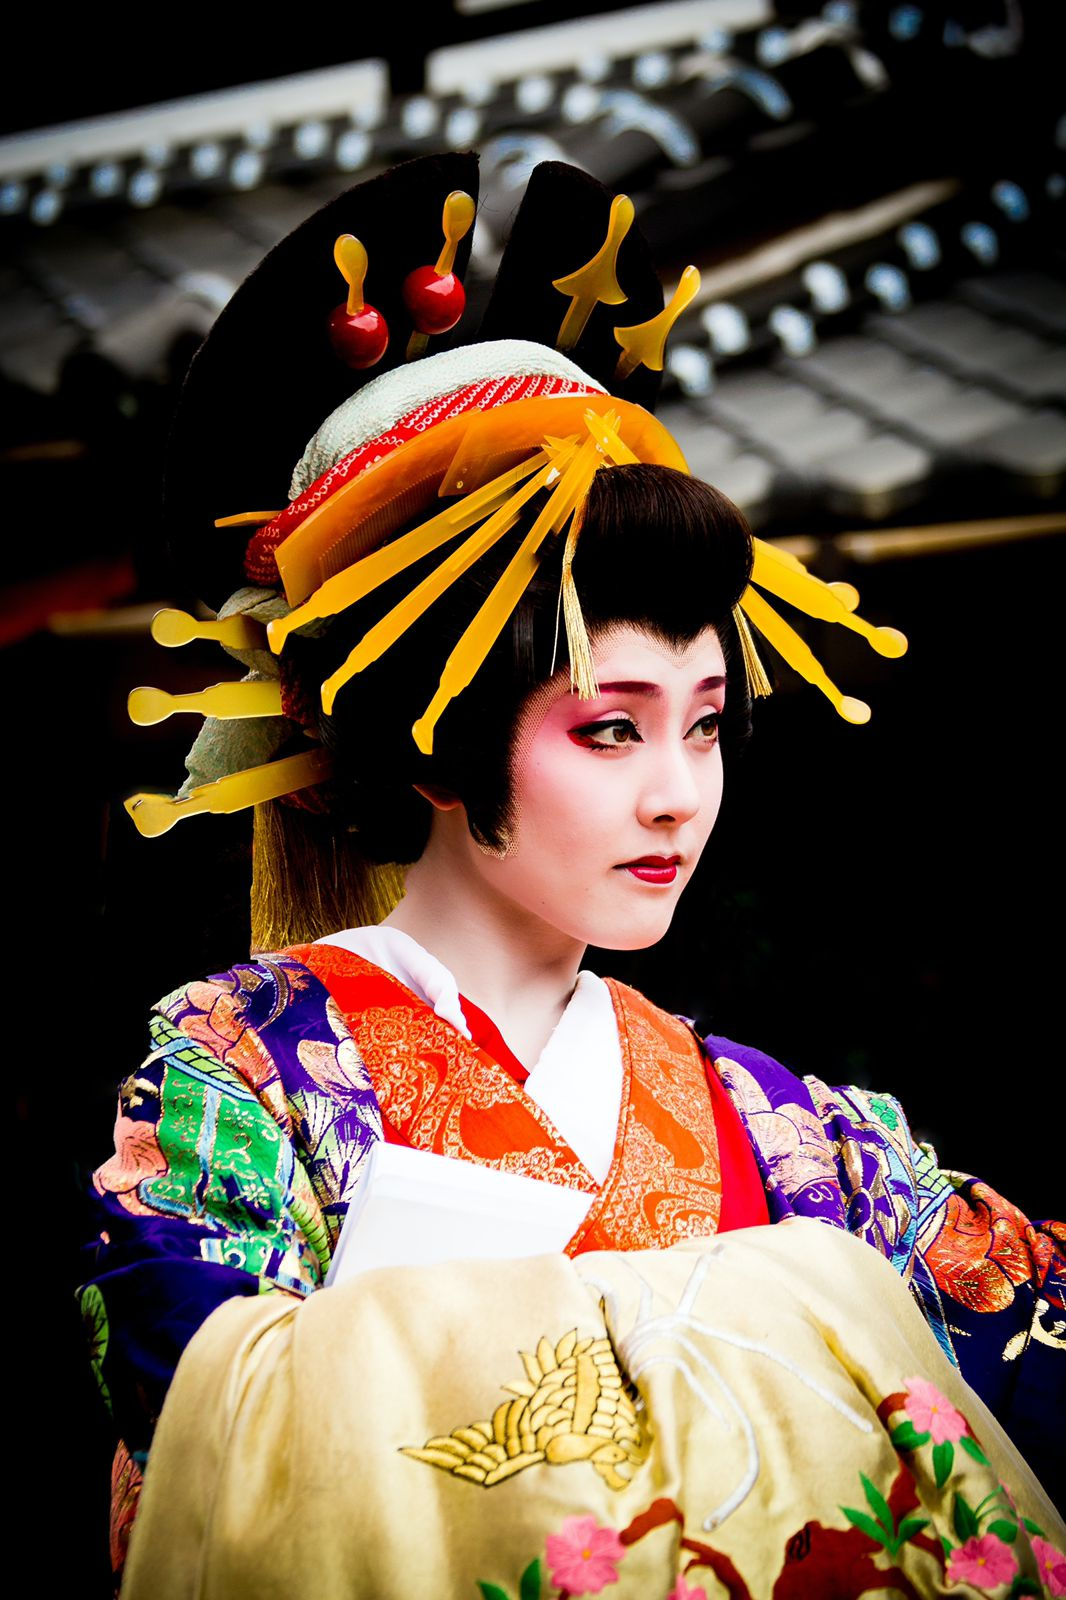 9 Amazing Things About Japanese Culture